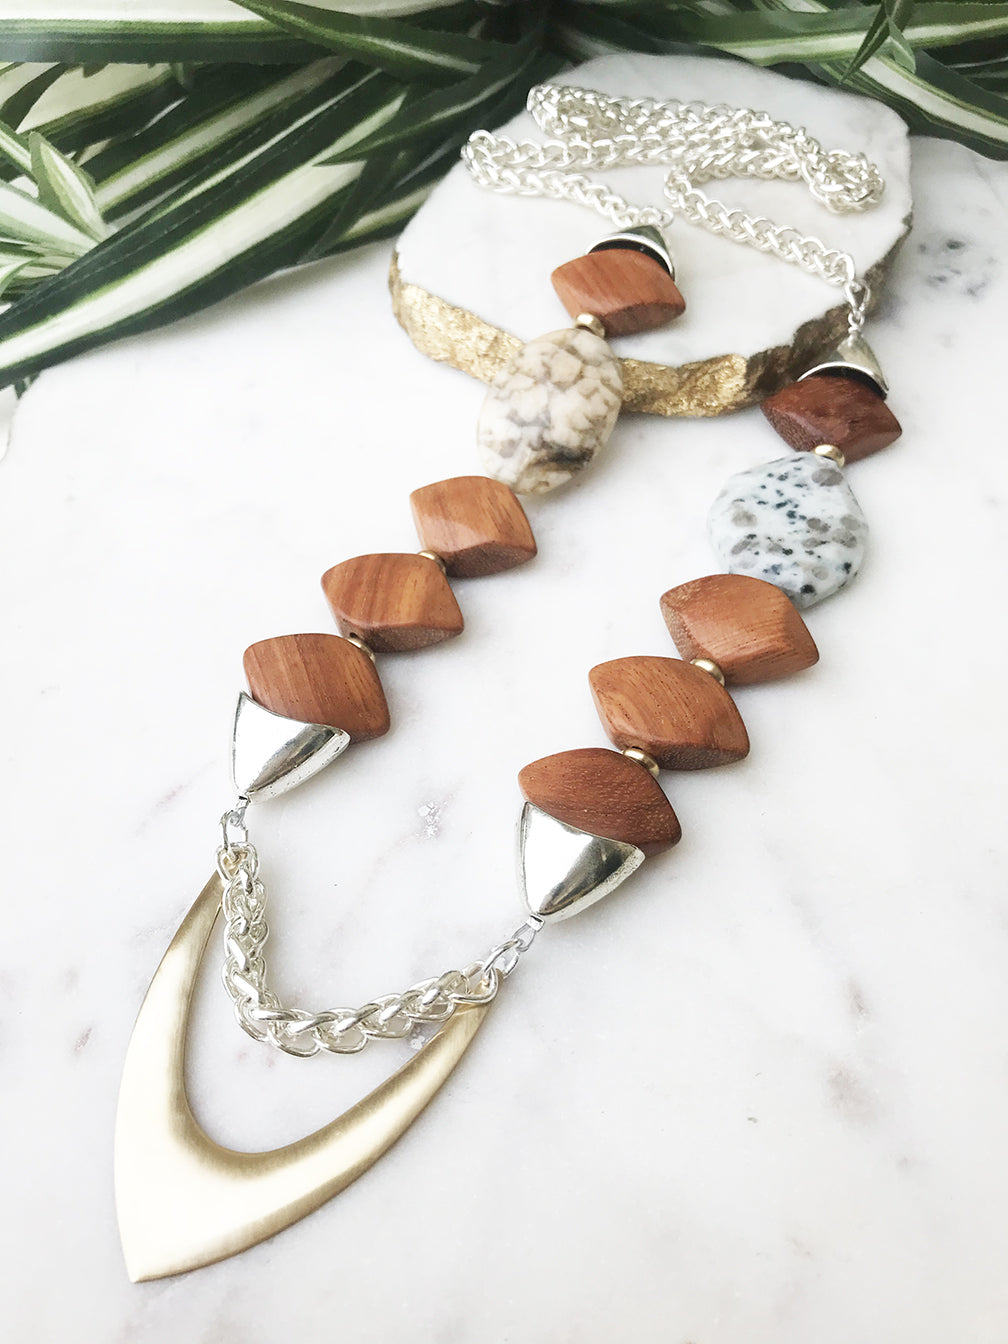 groove necklace - GR-009-NL